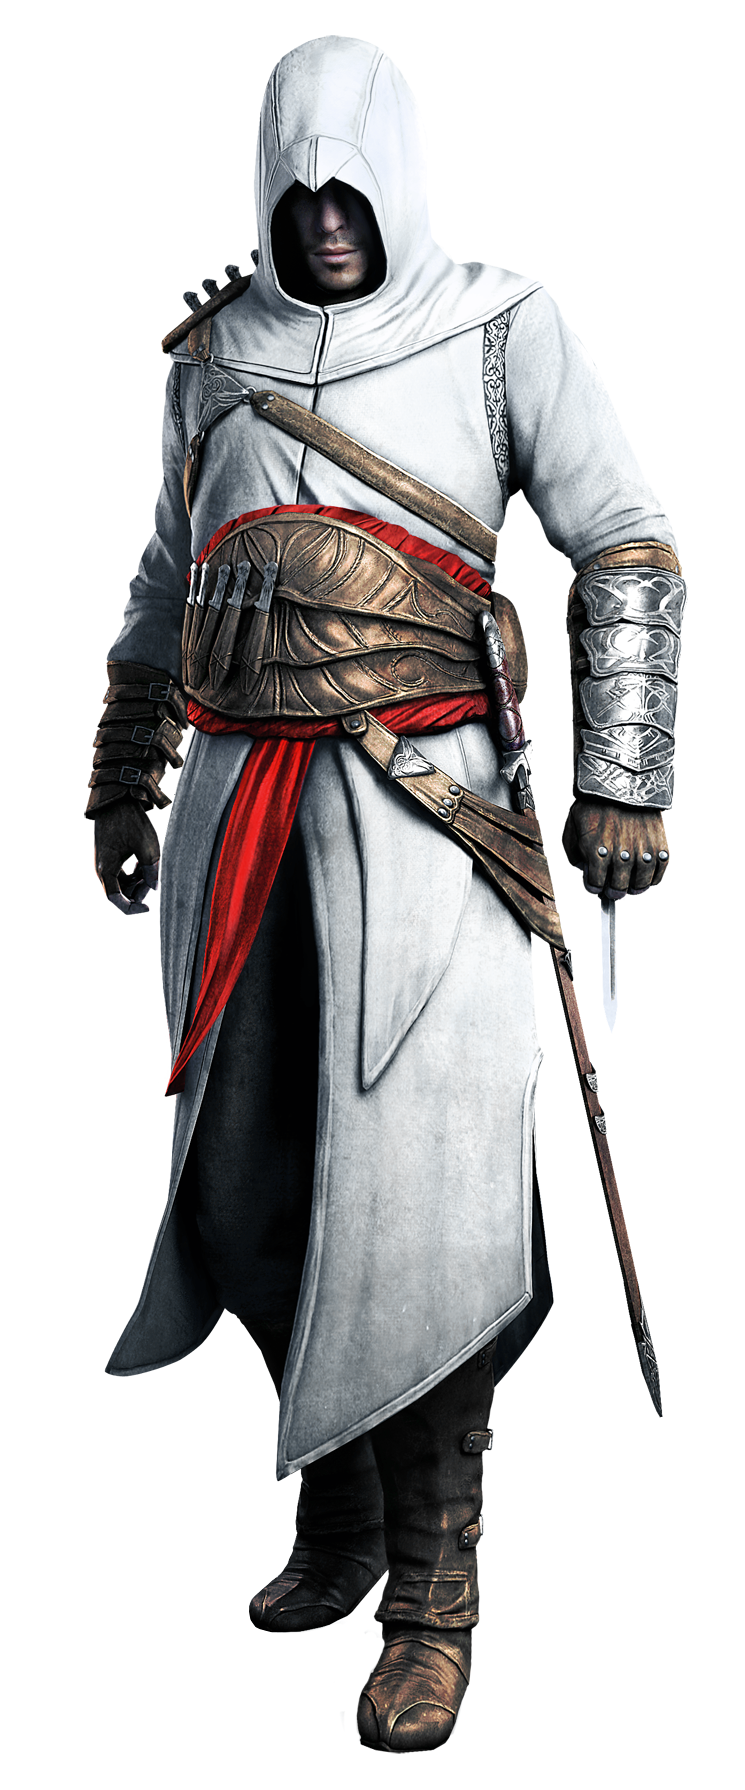 Assassins | Assassin's Creed Wiki | FANDOM powered by Wikia